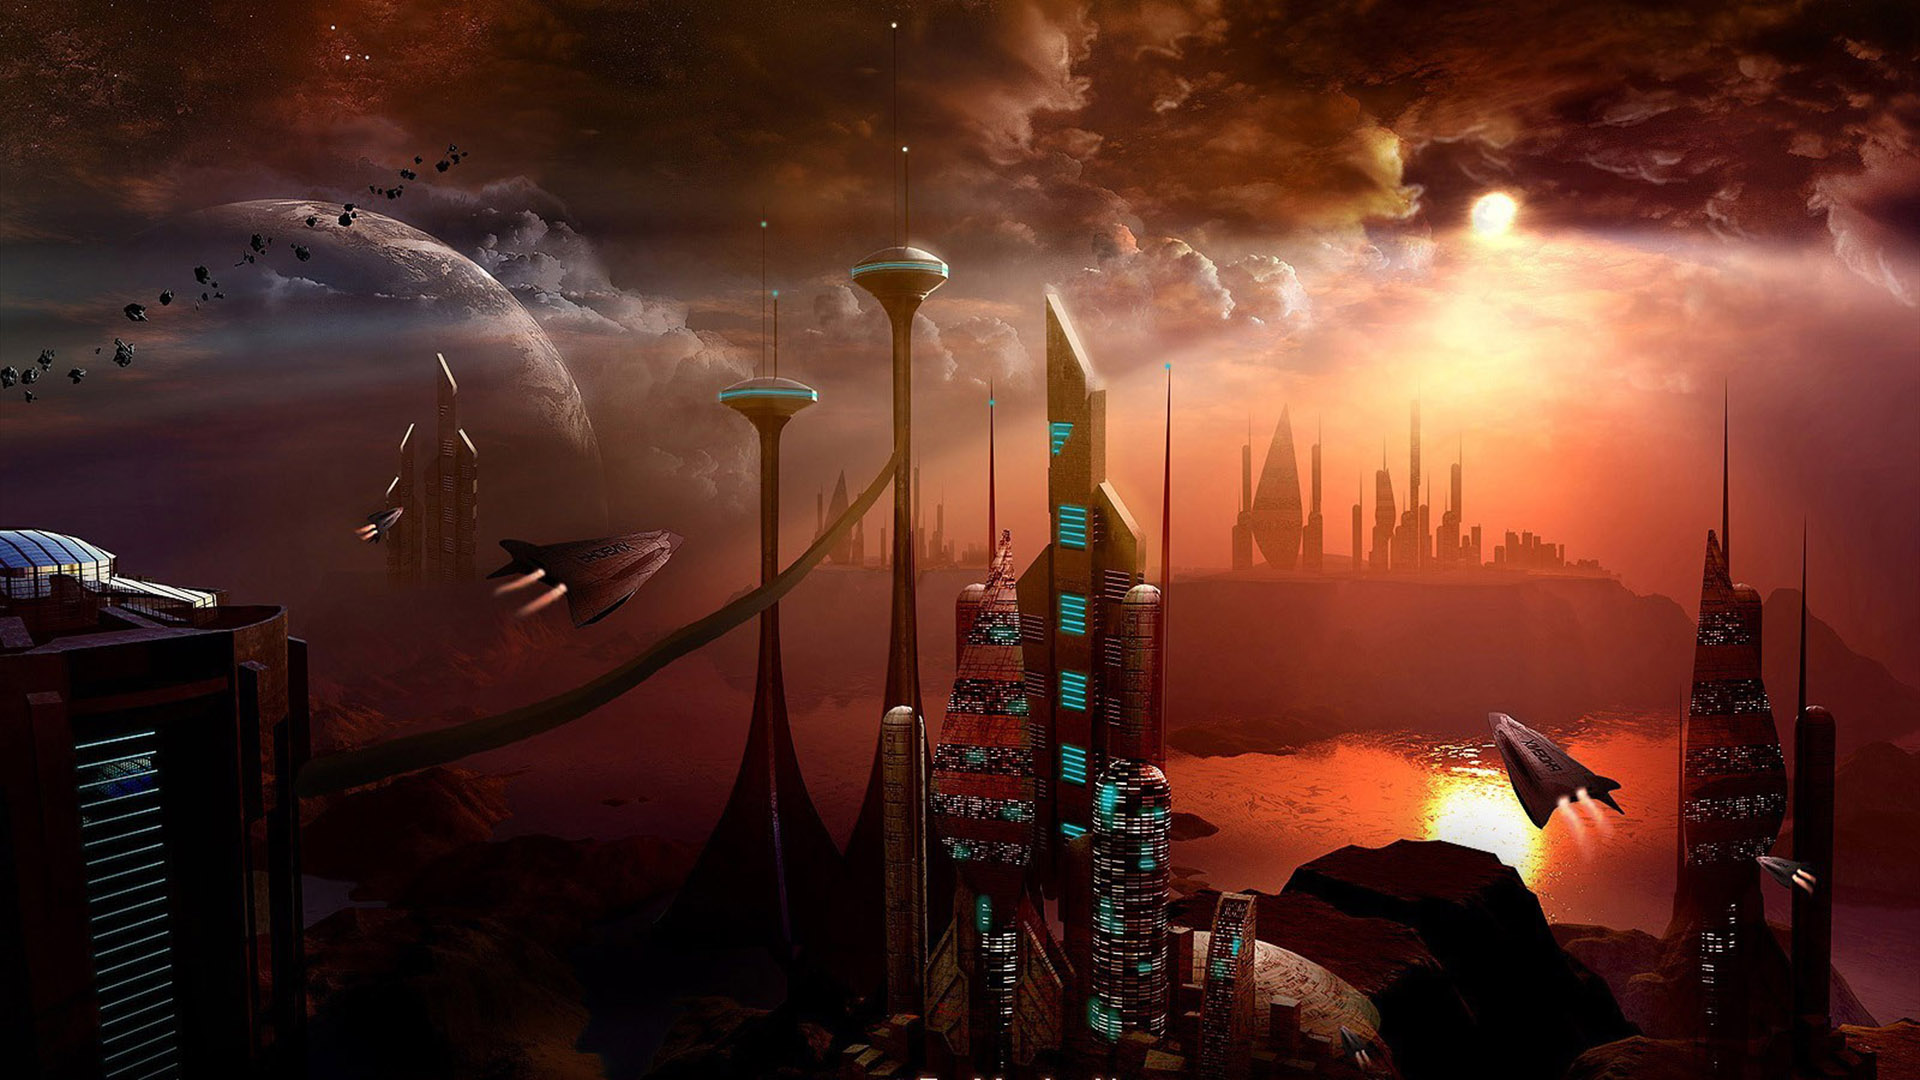 Sci Fi - City  - Red - Ufo - Sci Fi Wallpaper